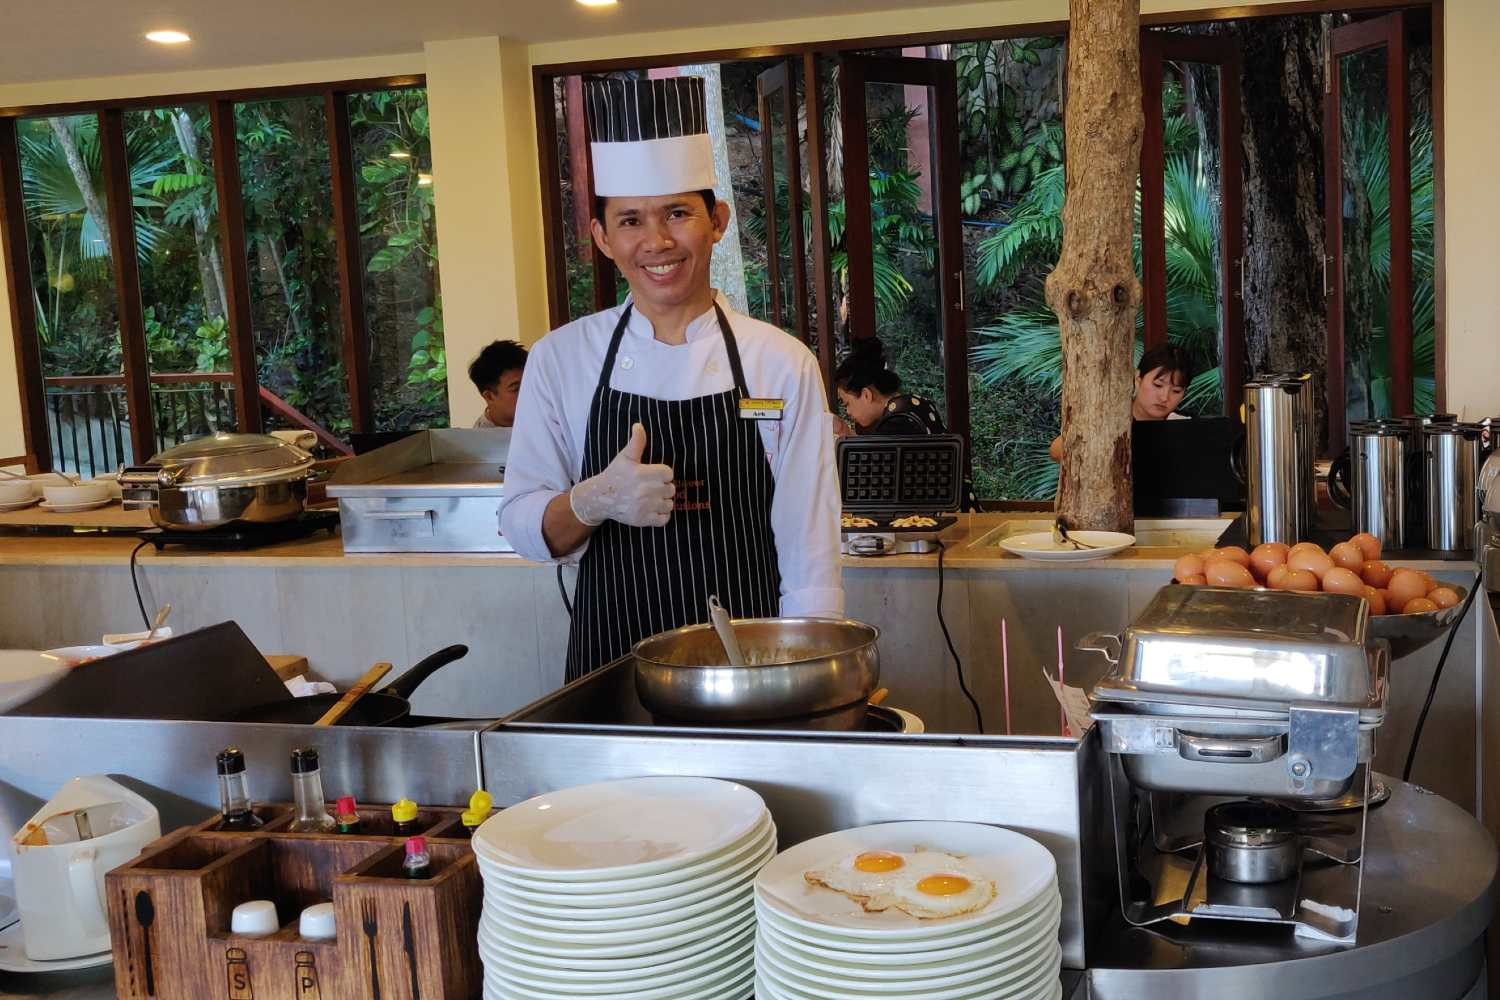 Egg station at the Avani Ao Nang Cliff Krabi Resort